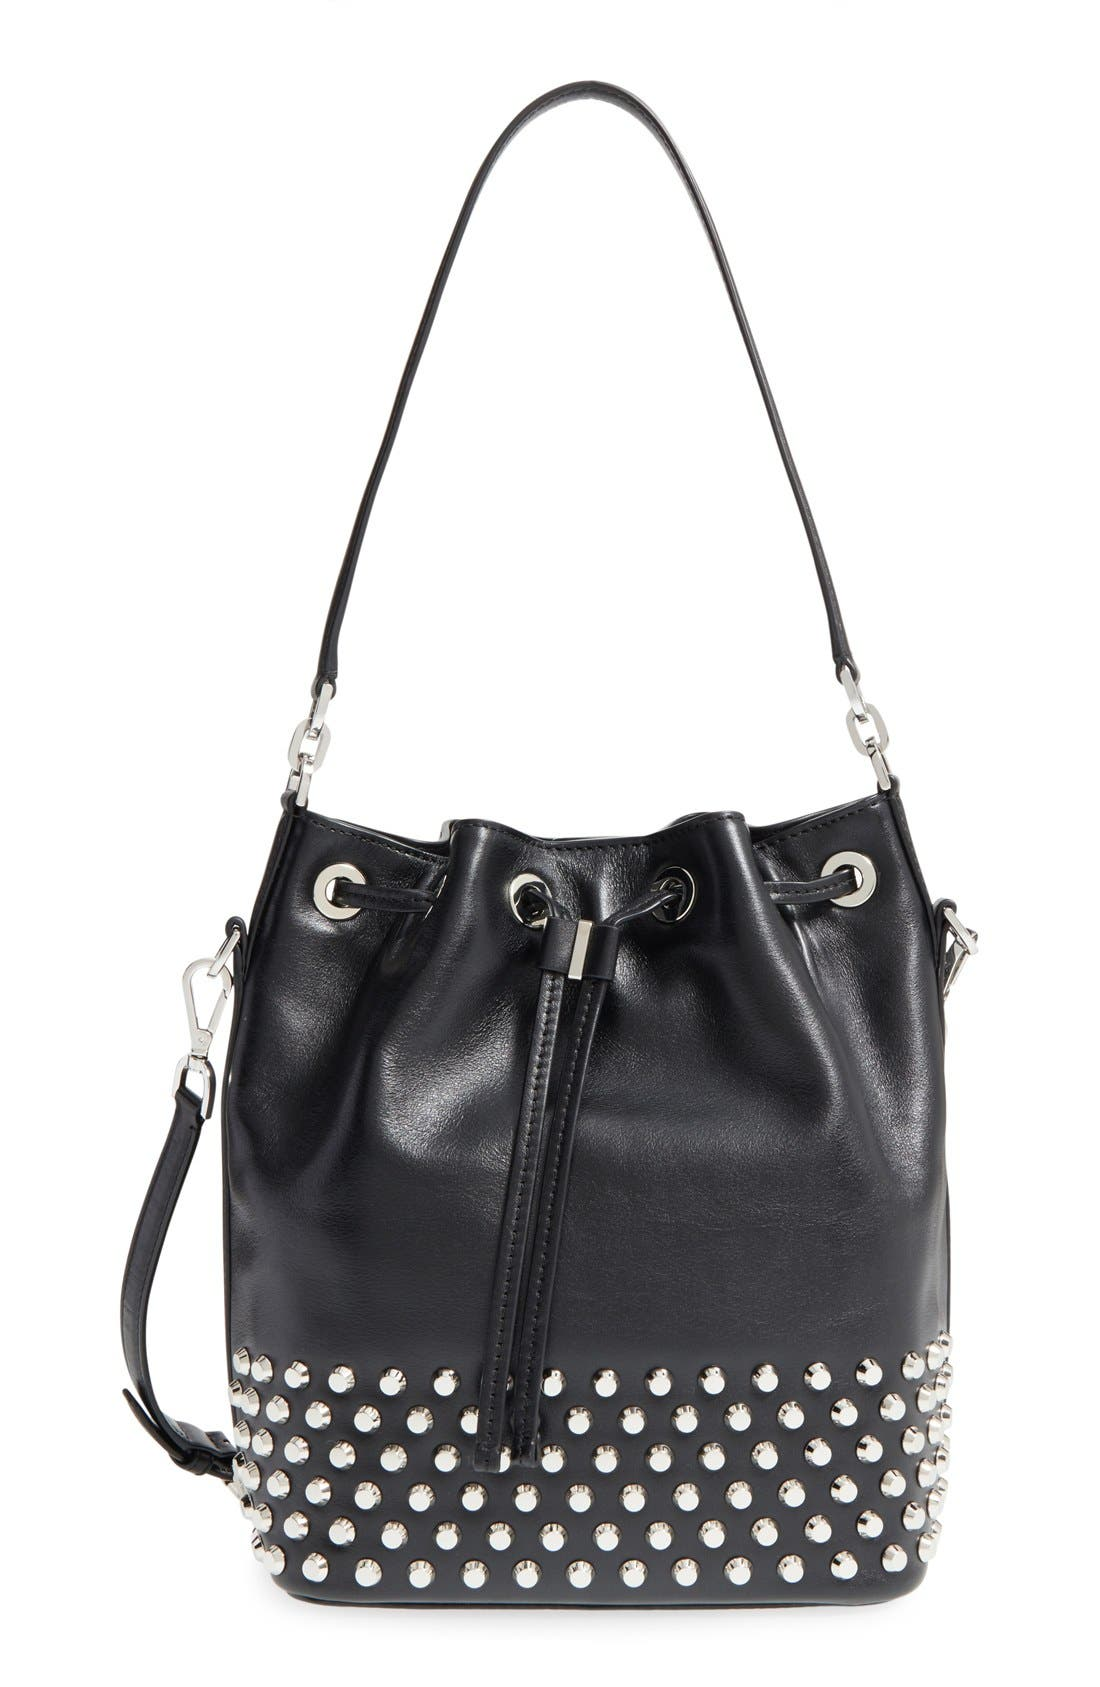 Alternate Image 1 Selected - MICHAEL Michael Kors 'Dottie' Studded Leather Bucket Bag